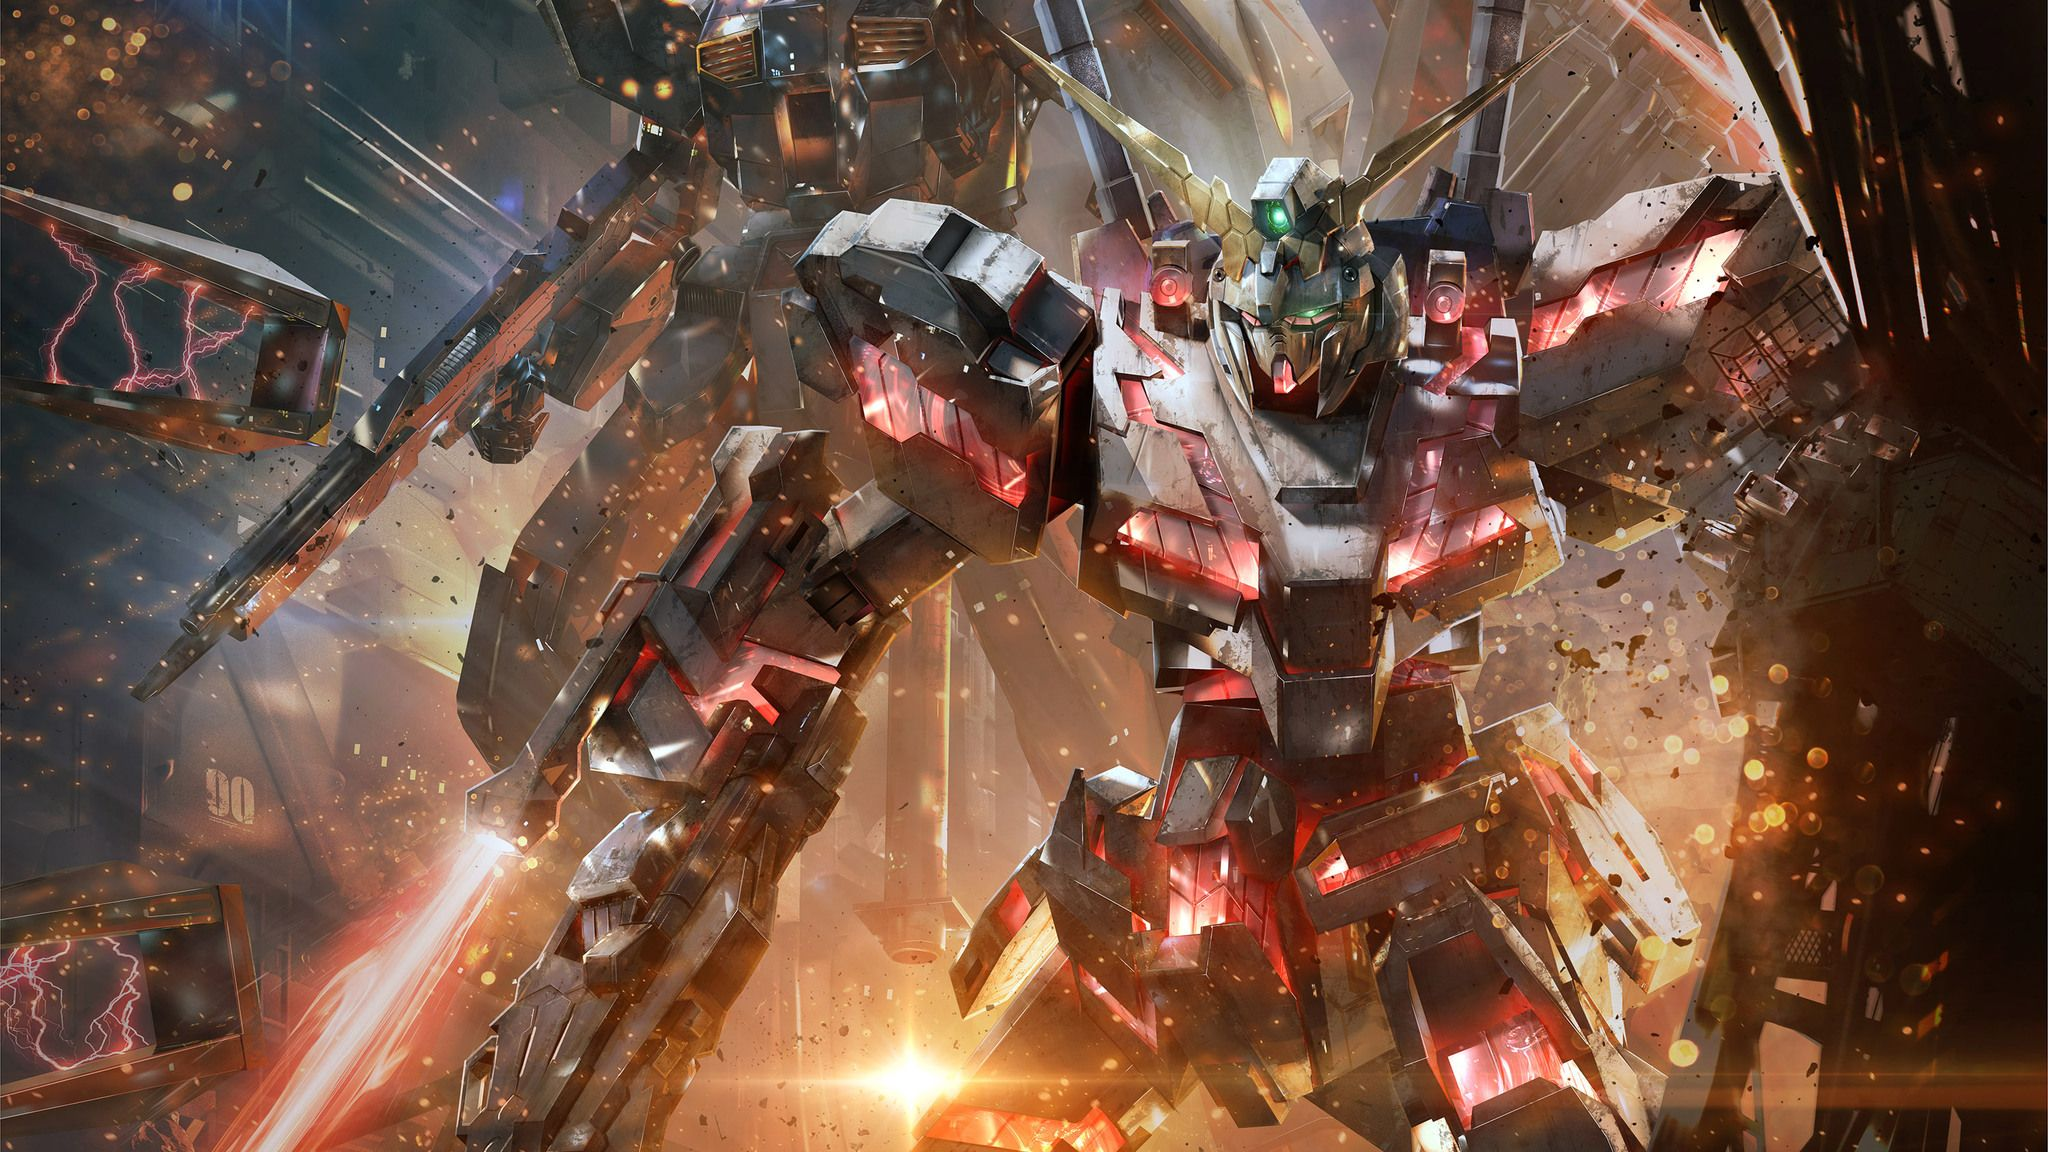 Gundam Wallpaper 1440x2560 Mywallpapers Site Gundam Wallpapers Unicorn Wallpaper Android Wallpaper